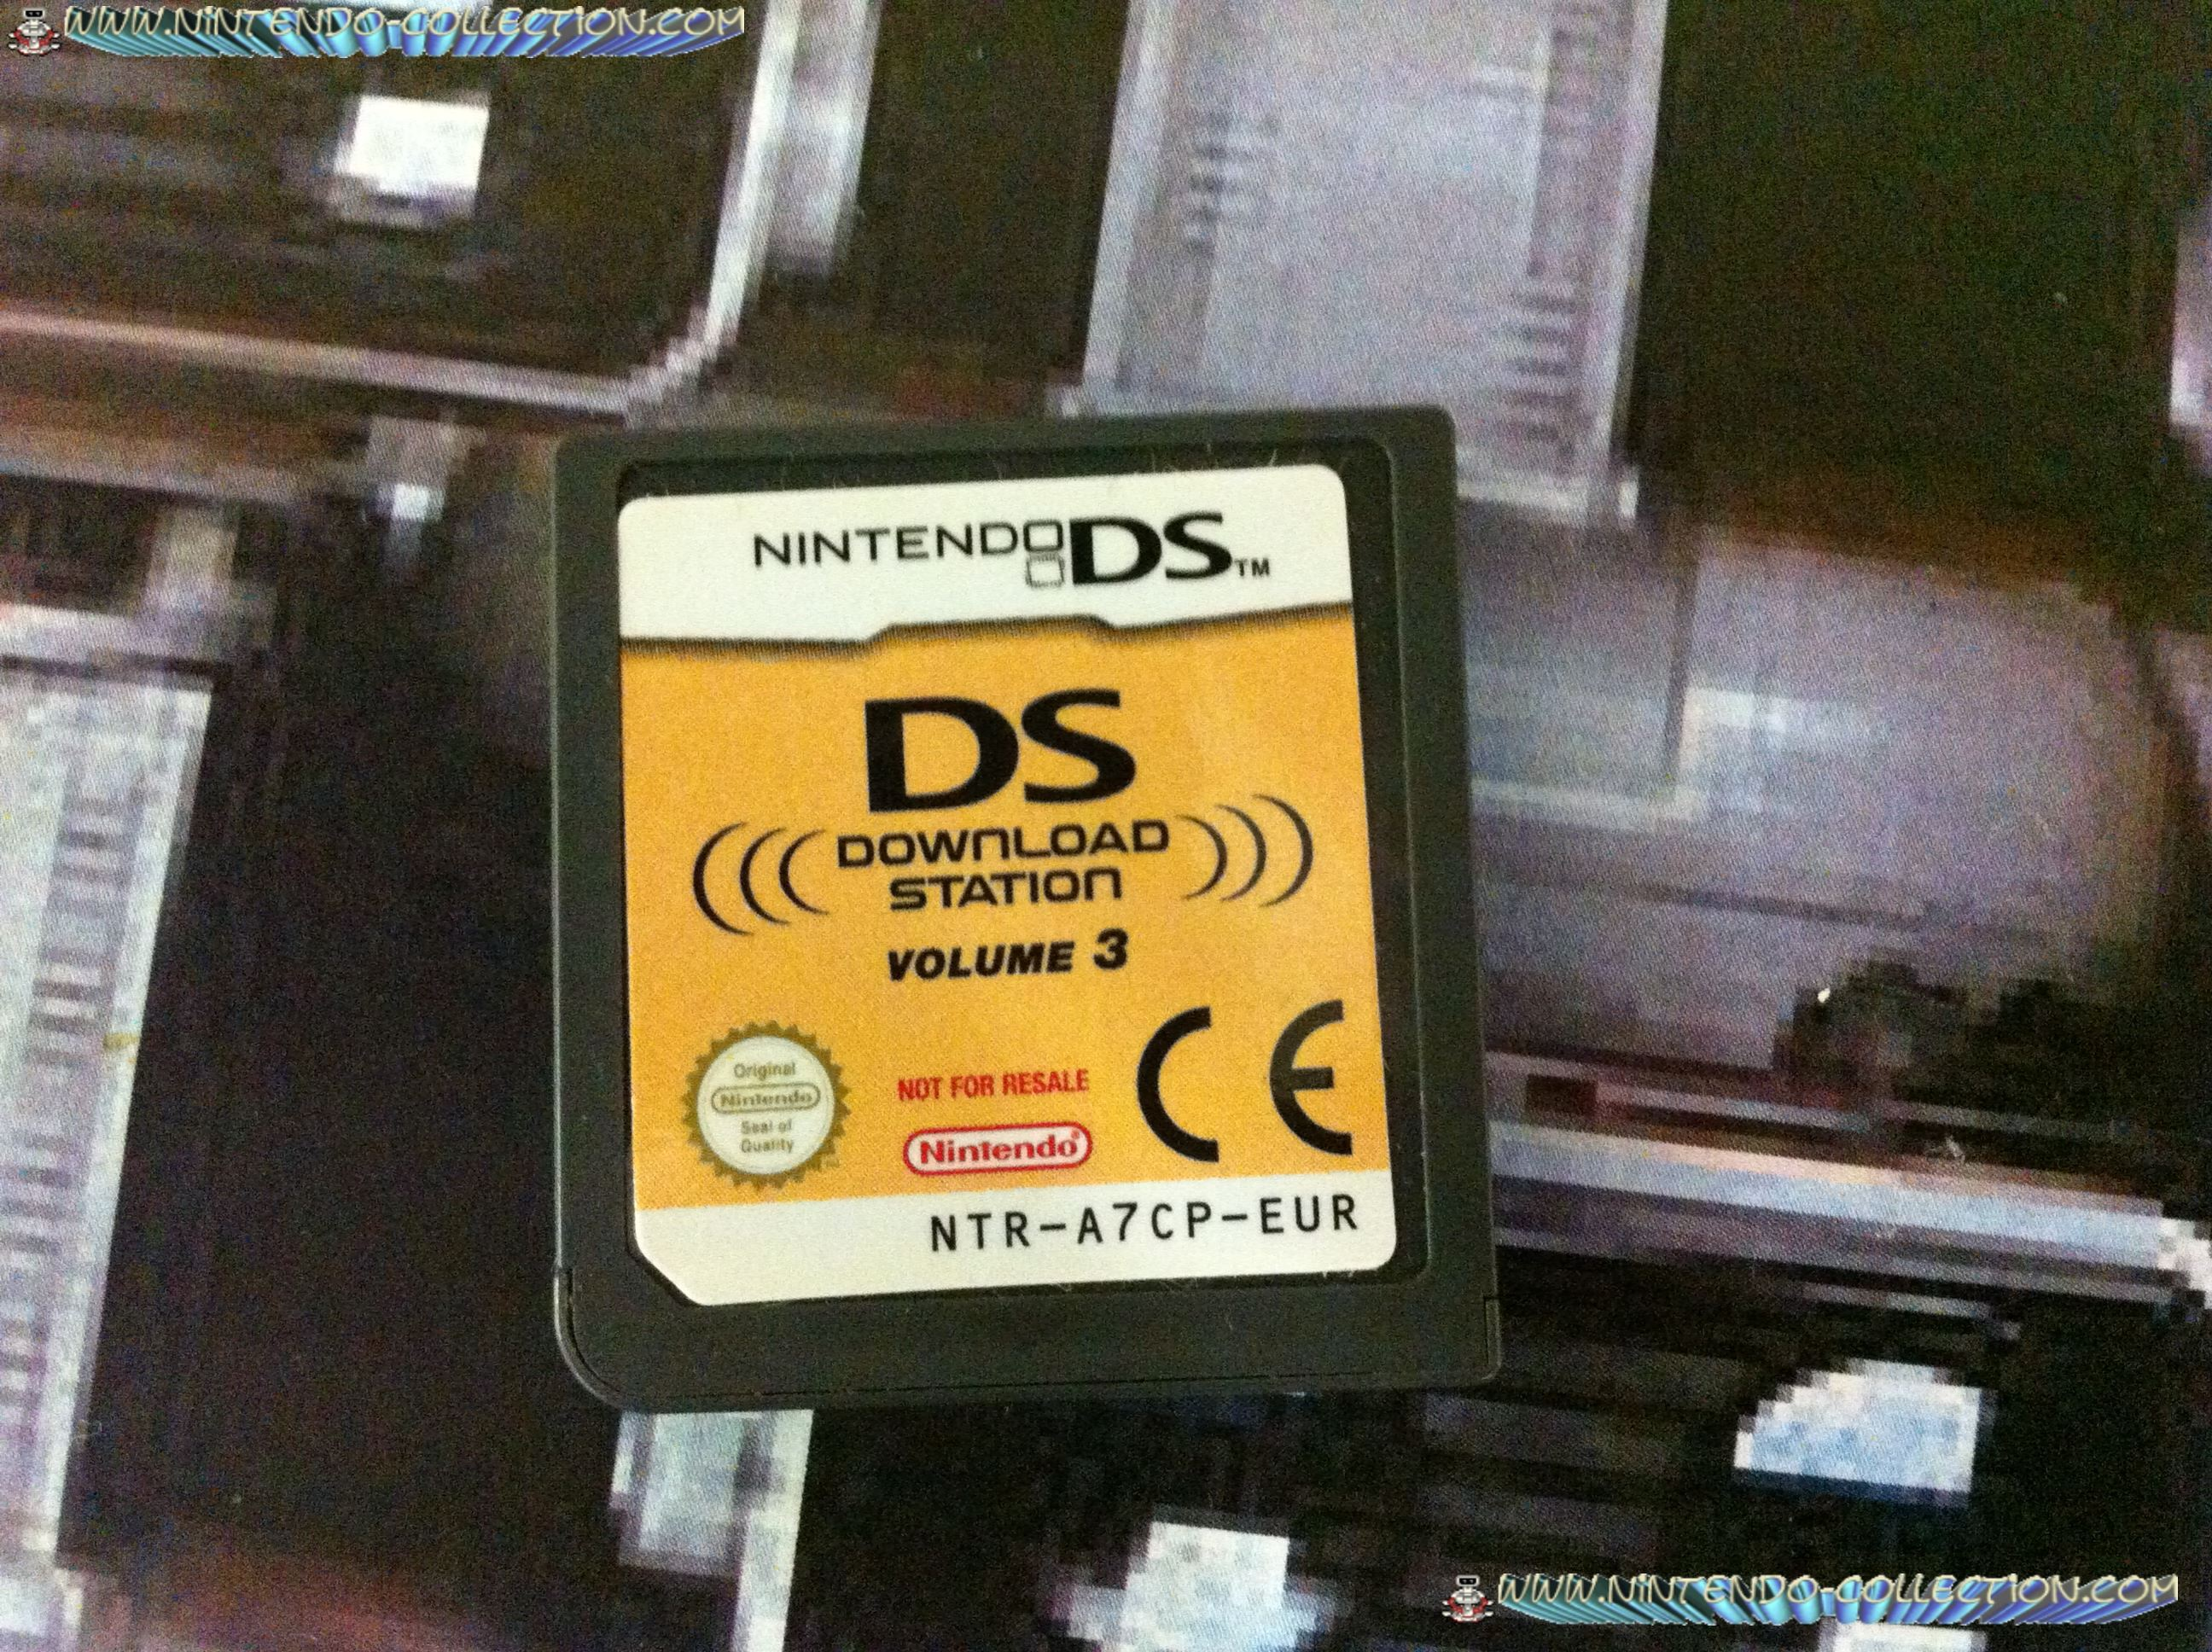 www.nintendo-collection.com - Demo DS 3 DS - Not For Resale - Europe Download Station Volume 3